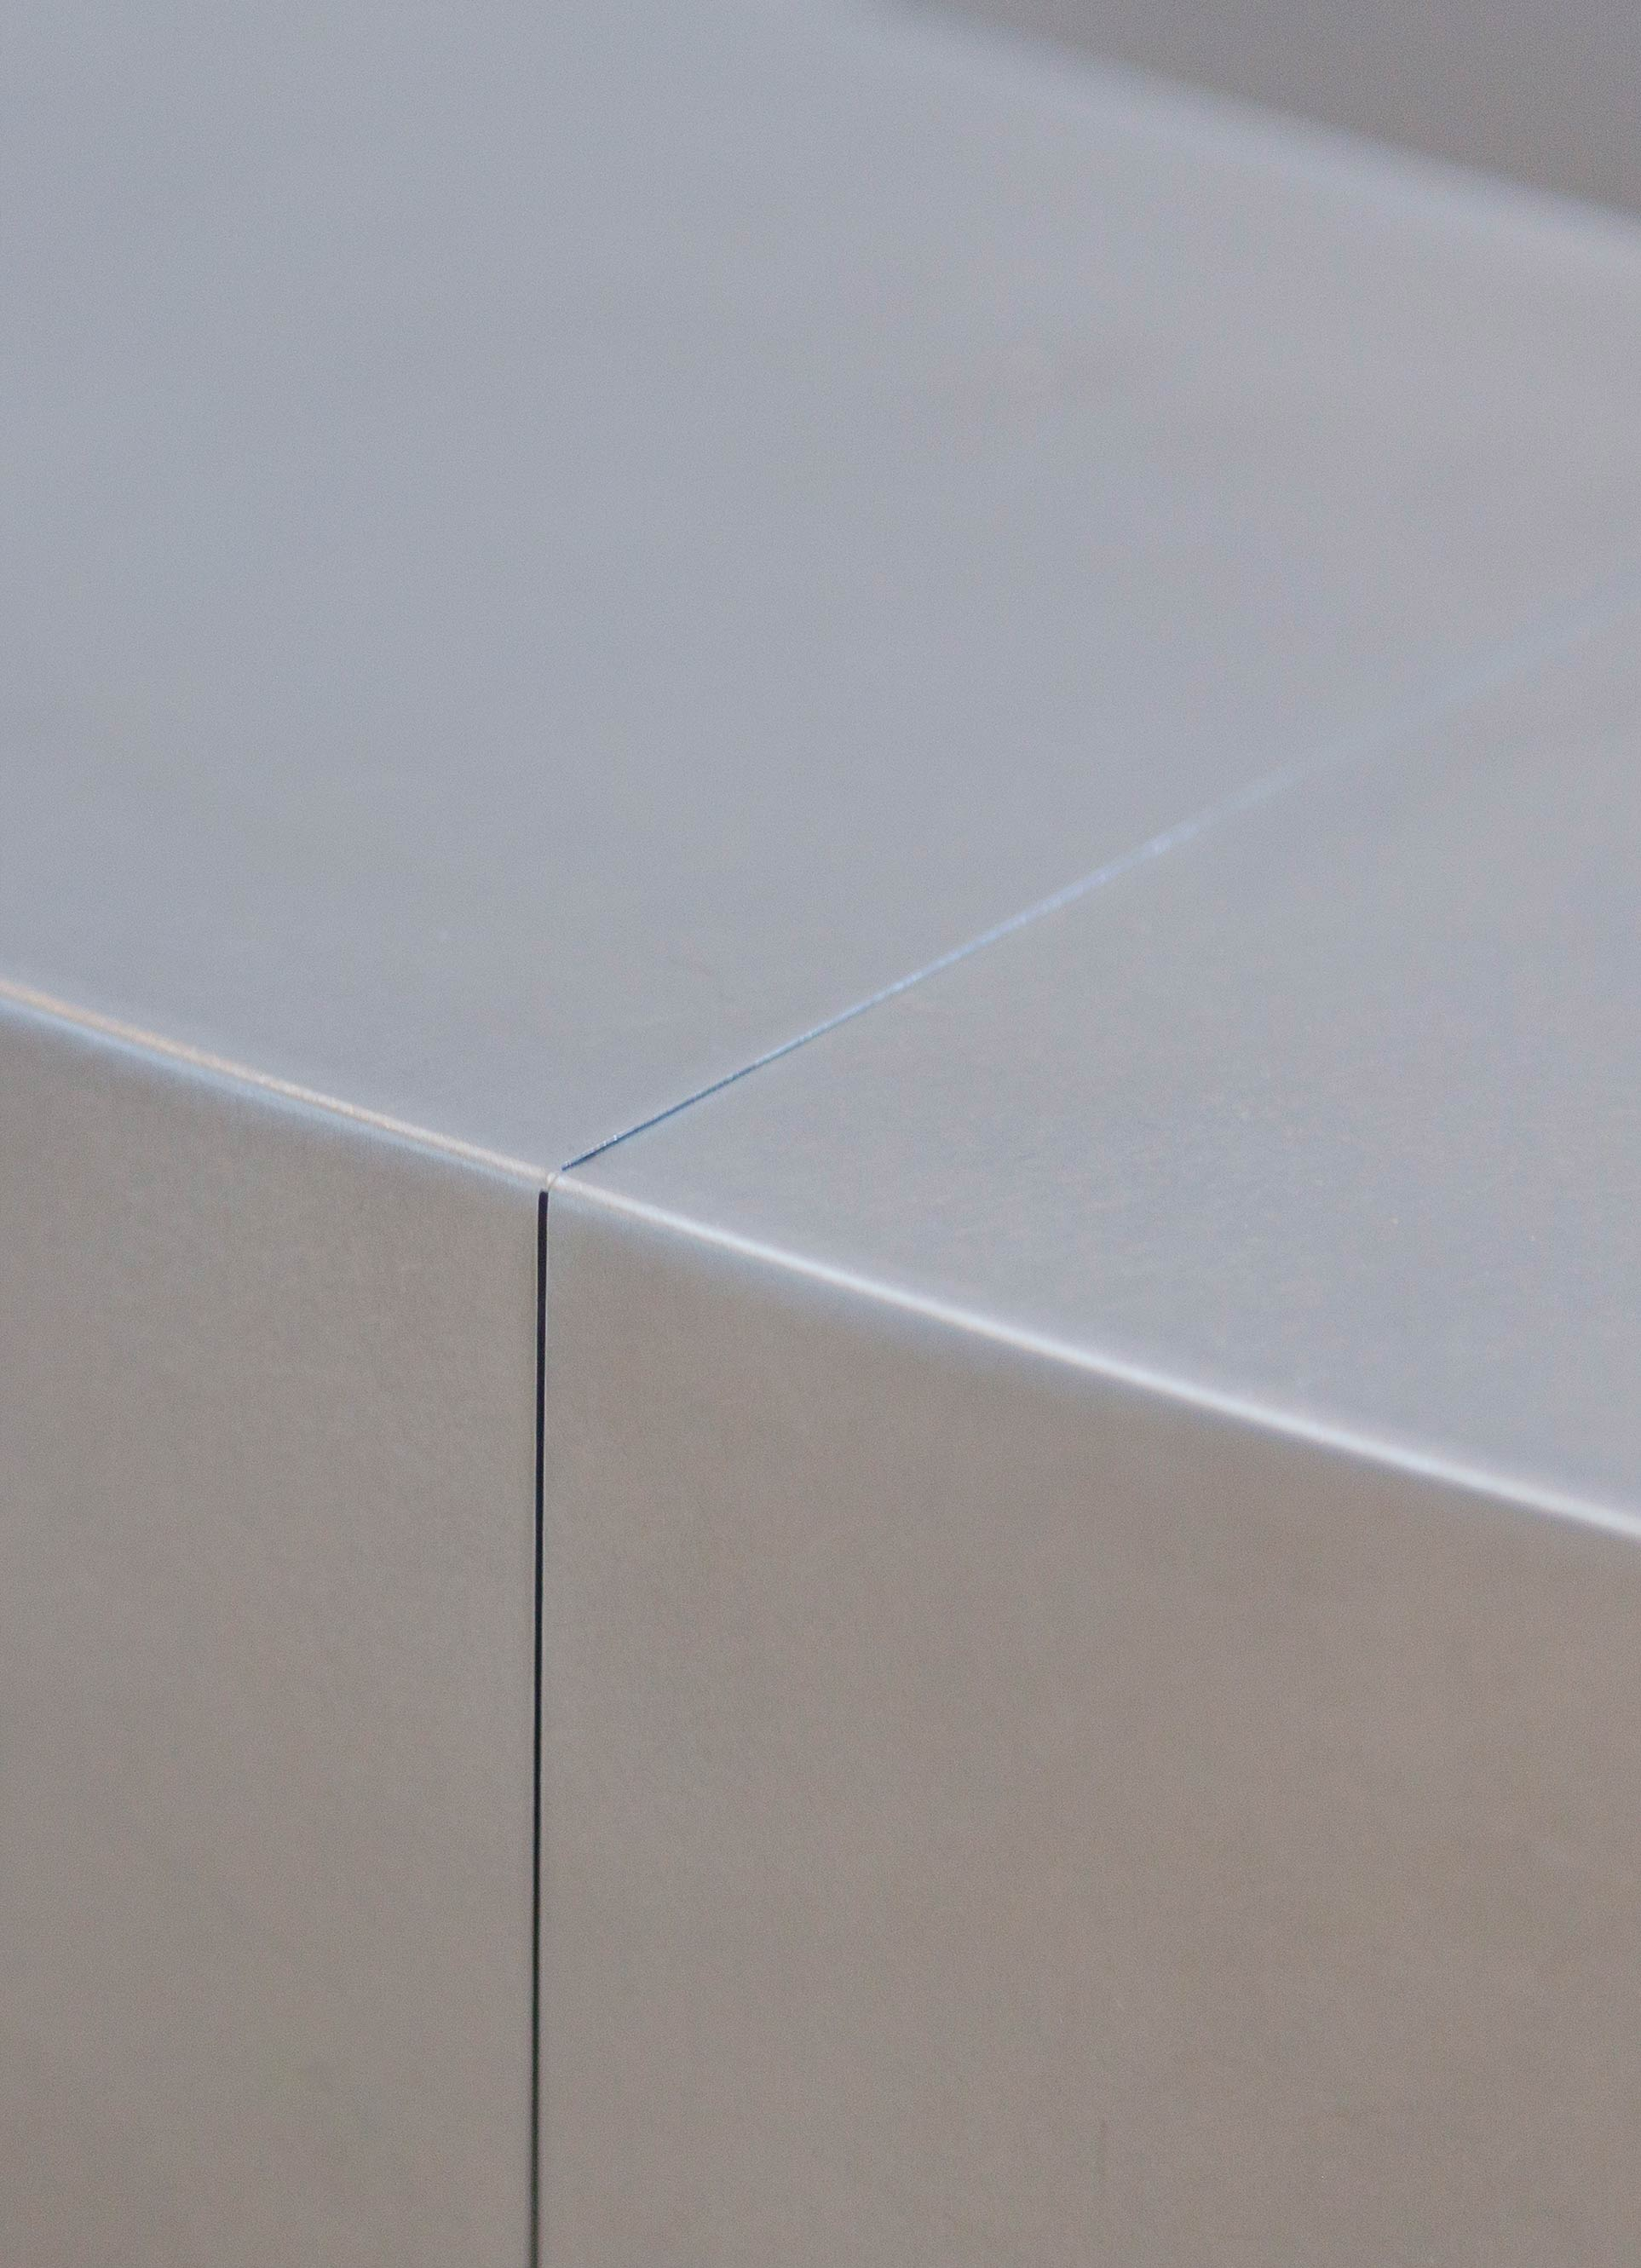 Detail of the stainless steel reception desk for the Nerman Museum of Contemporary Art